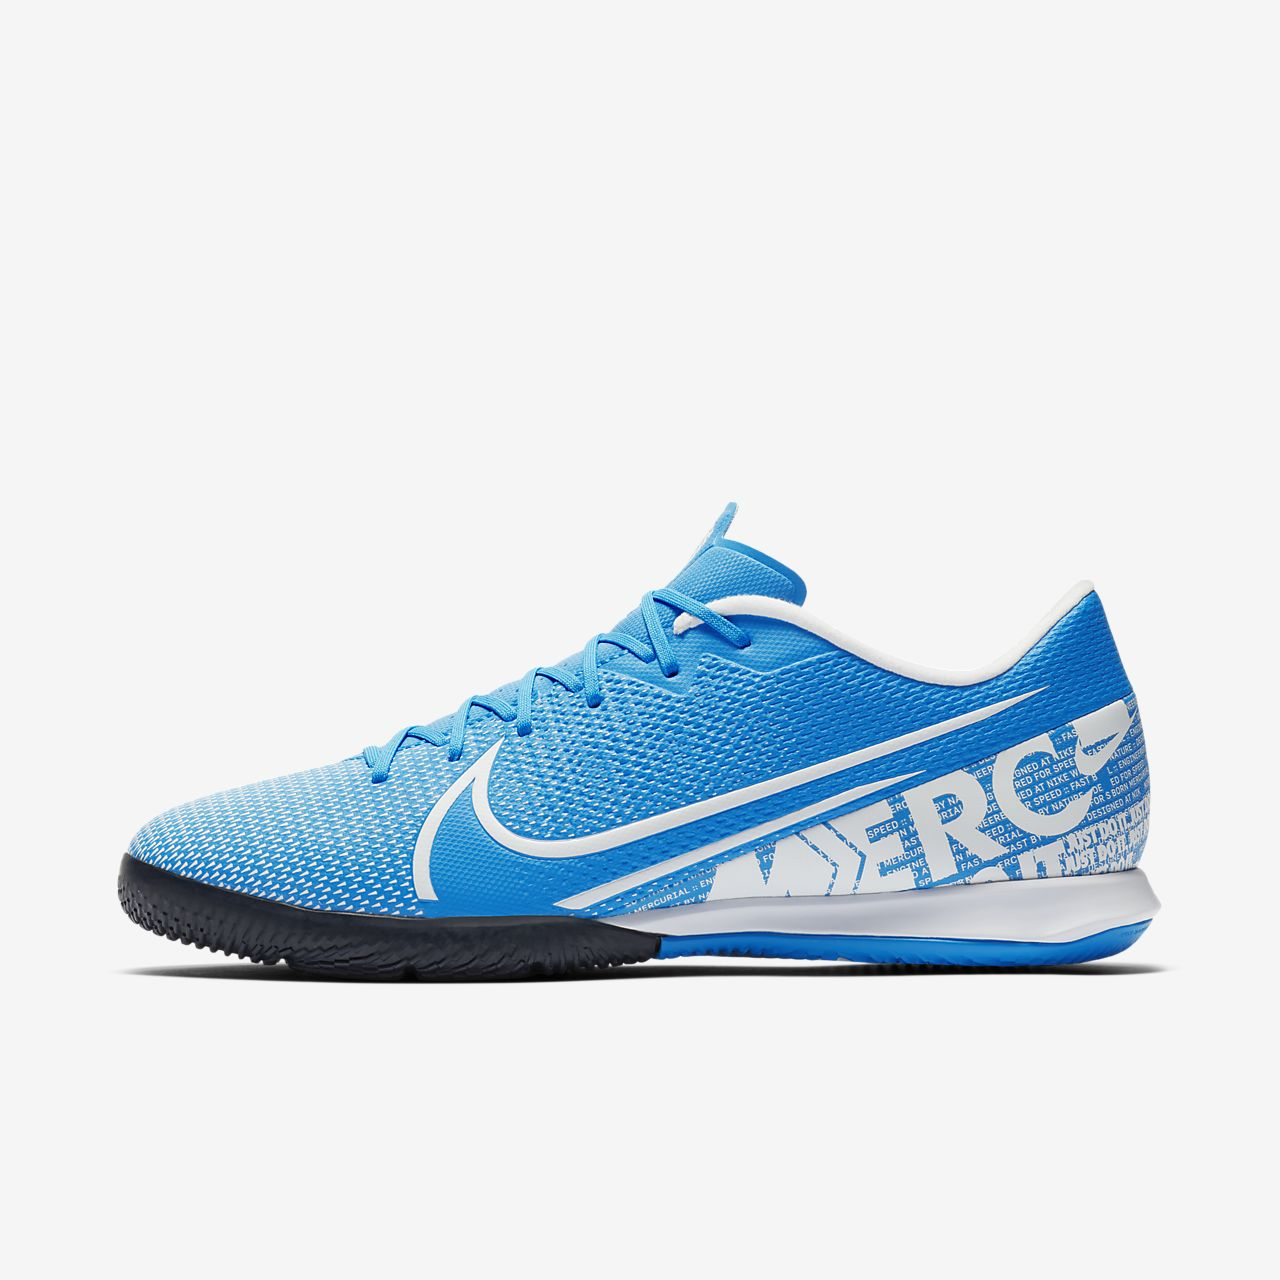 Nike Mercurial Vapor 13 Academy IC Indoor/Court Football Shoe